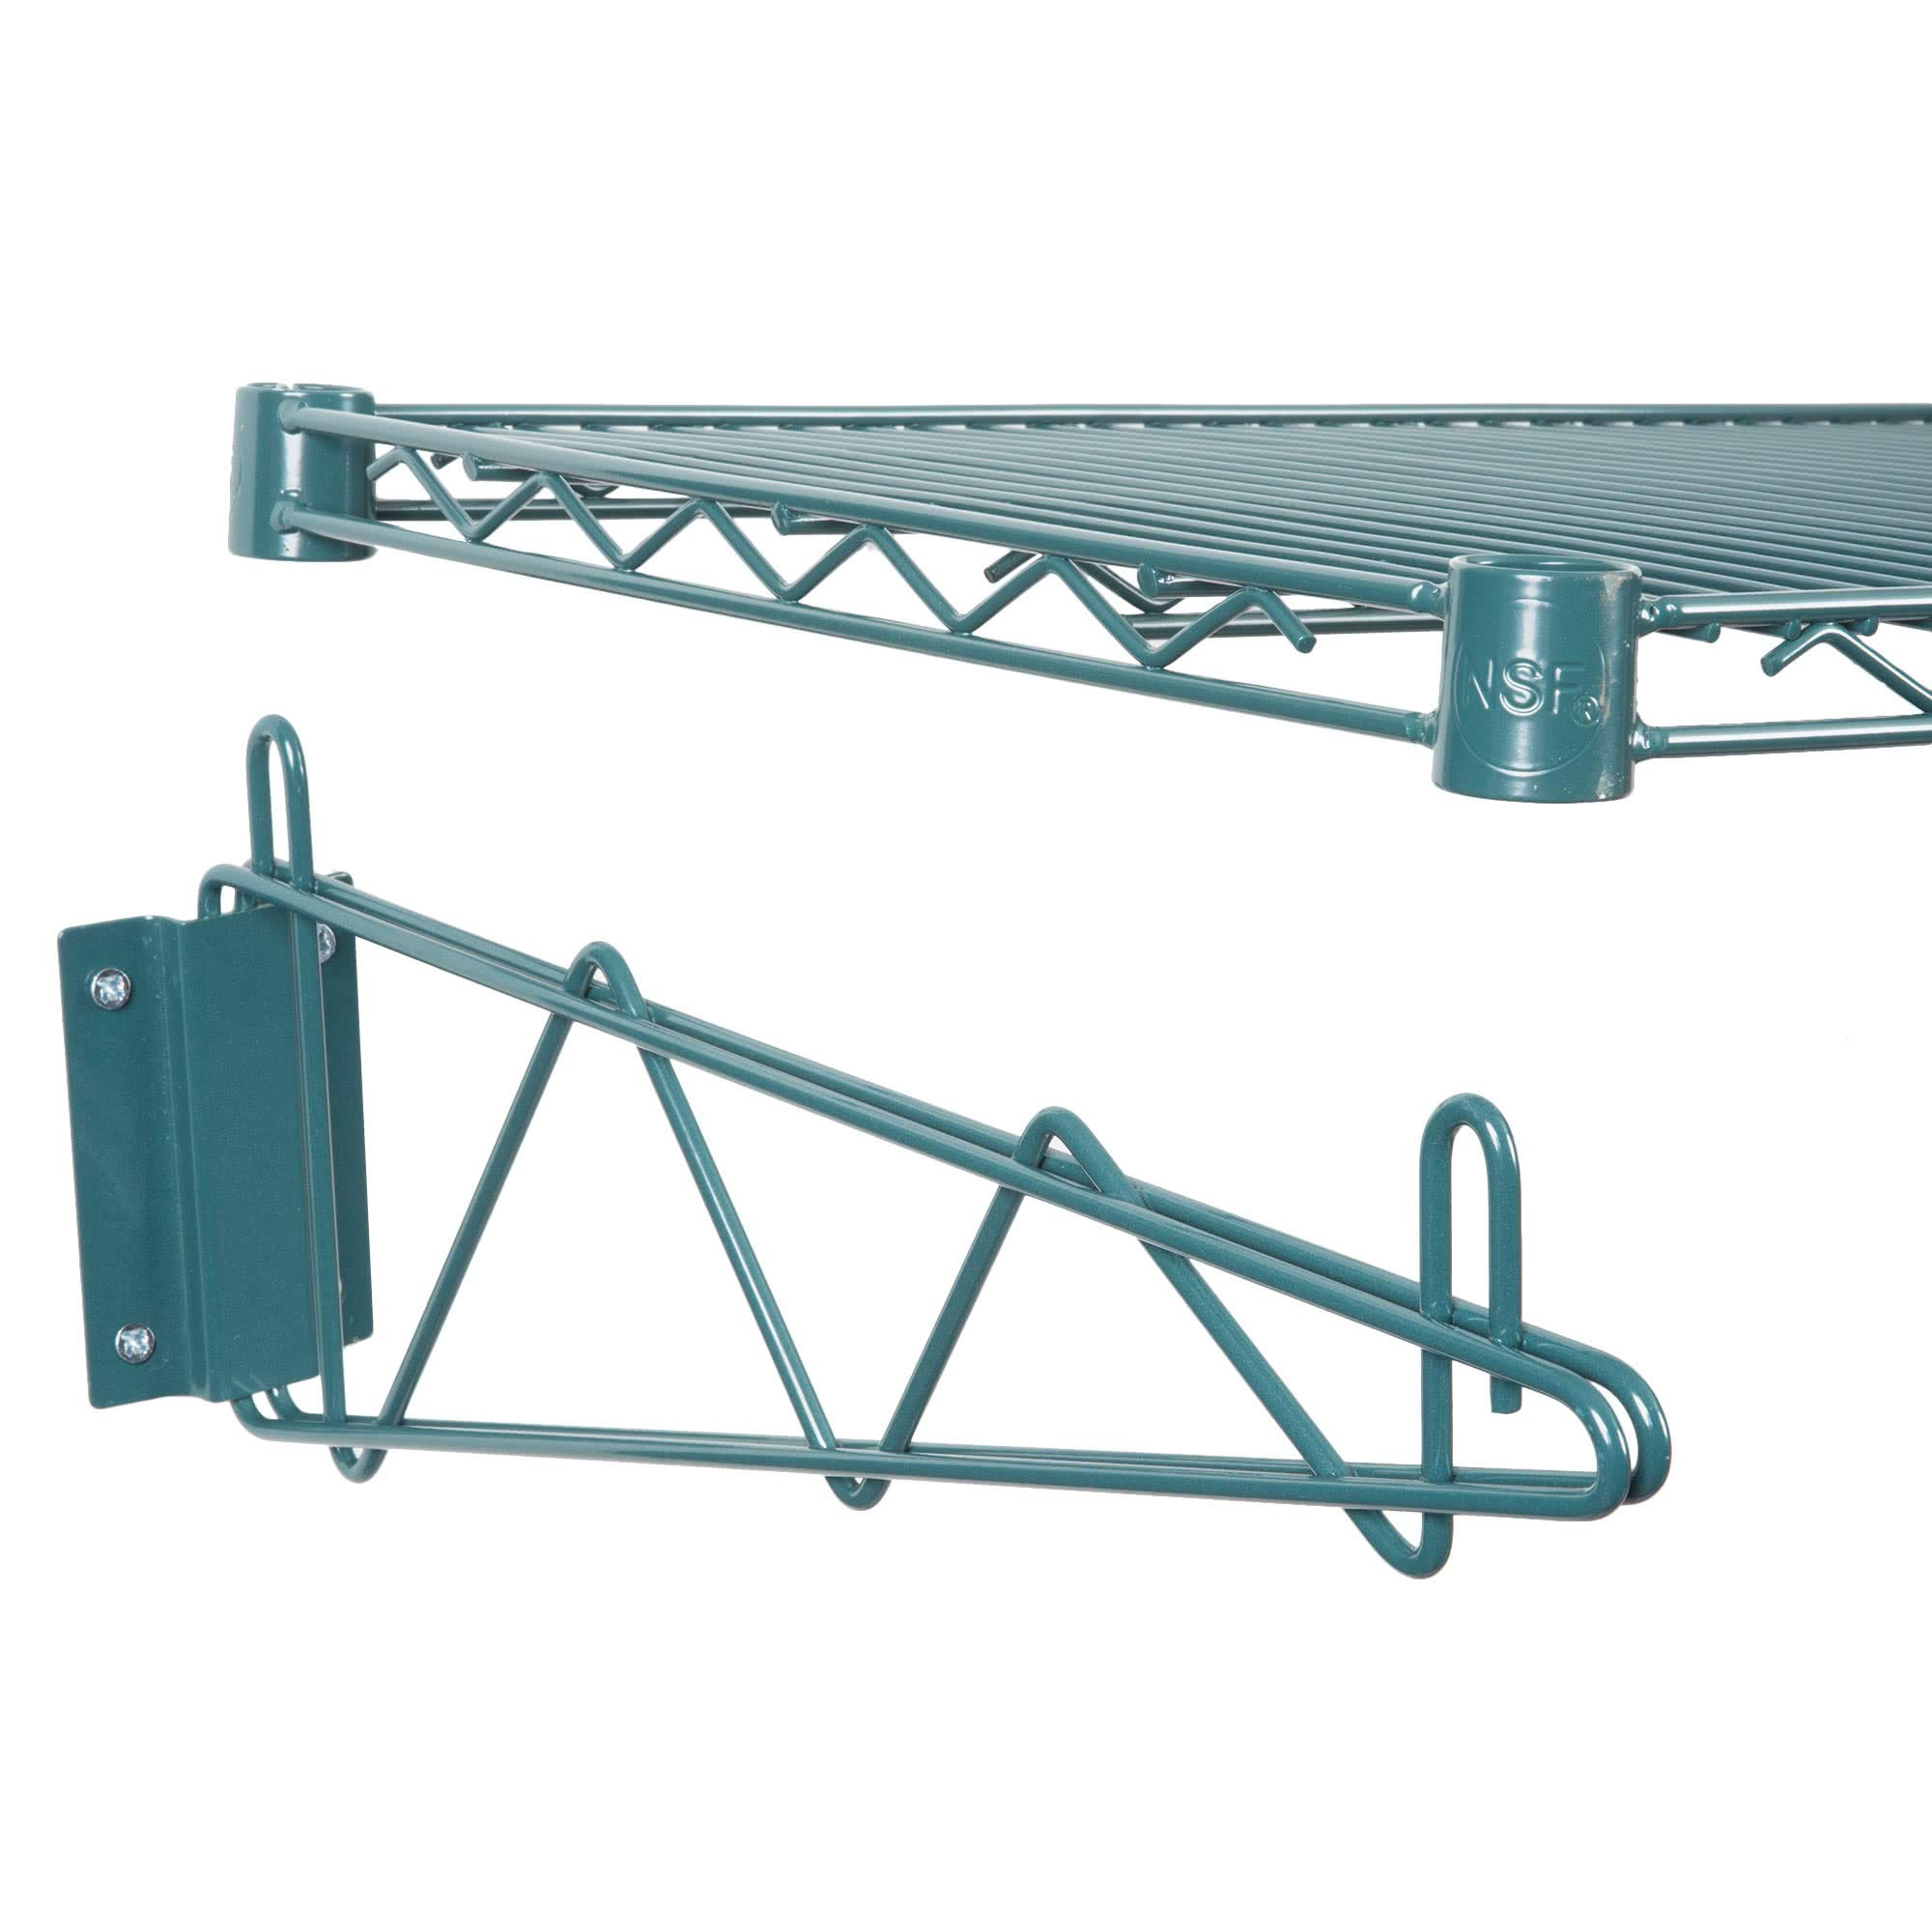 Green Epoxy Coated Wire Wall Mount Shelf 24 x 60 - NSF - Commercial by KPS (Image #2)